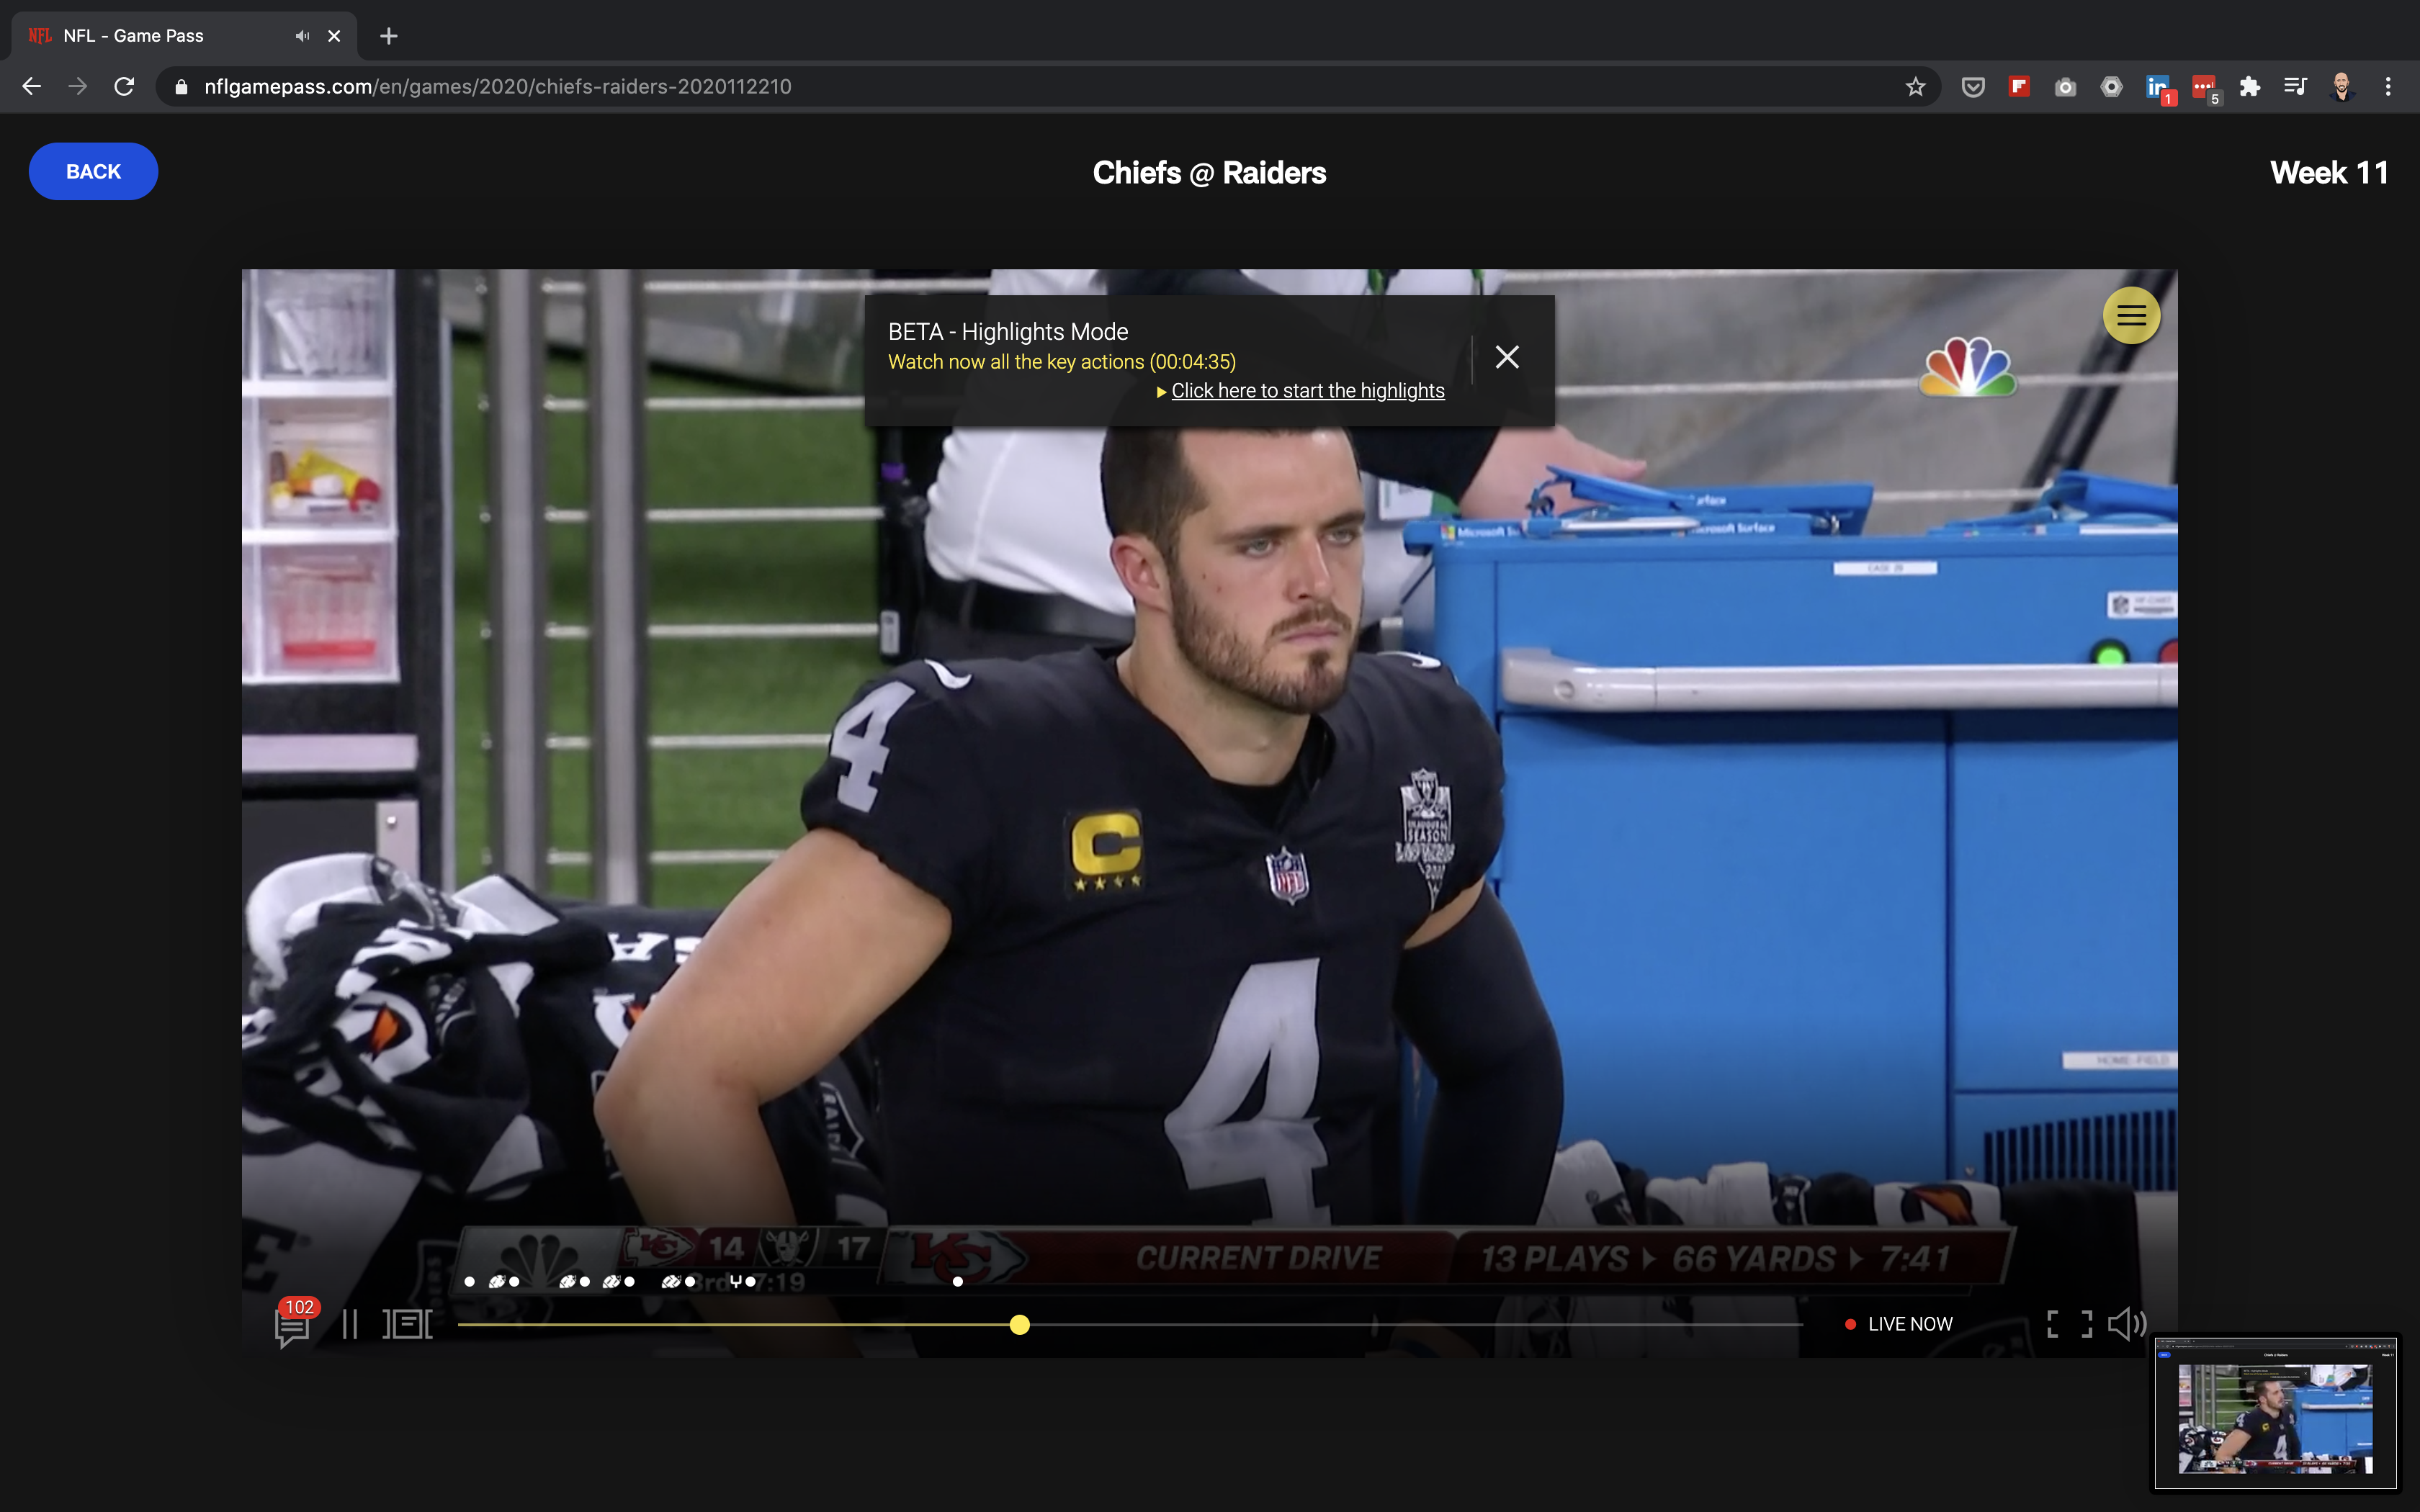 When OTT Gets Smarter: Dynamic Highlights During Live Games | by carlo de  marchis | Medium